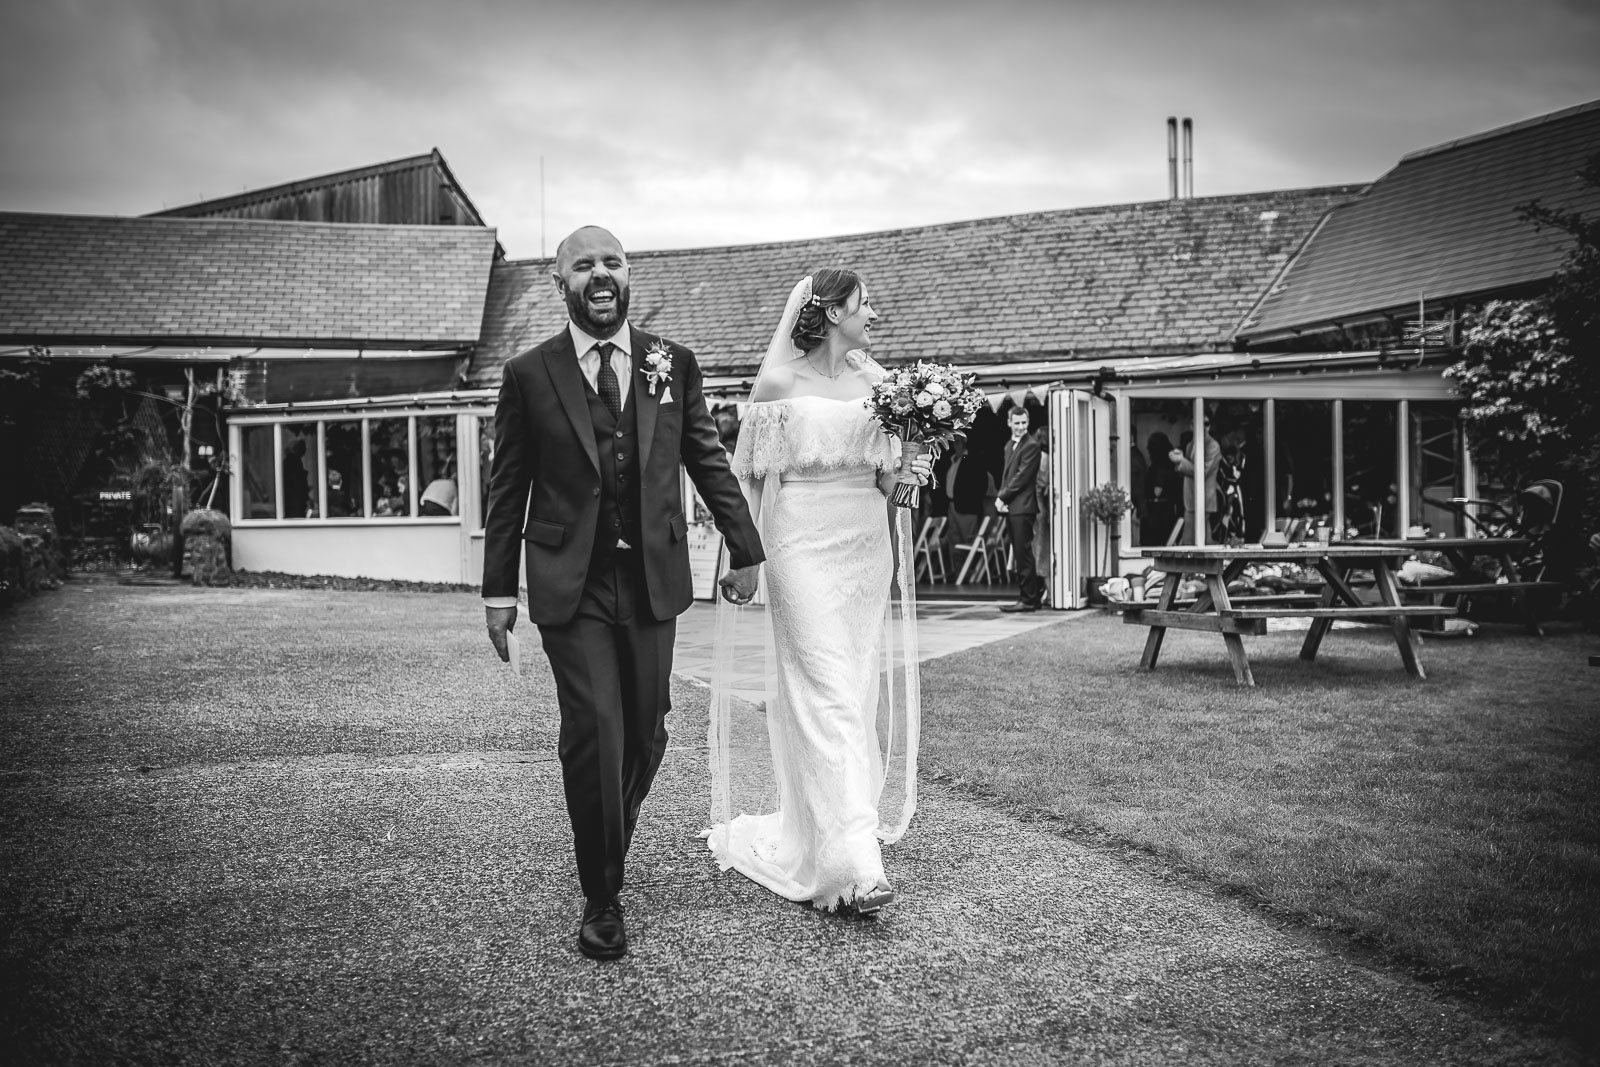 the old barn - clovelly - ugotthelove - wedding photography-7751.jpg